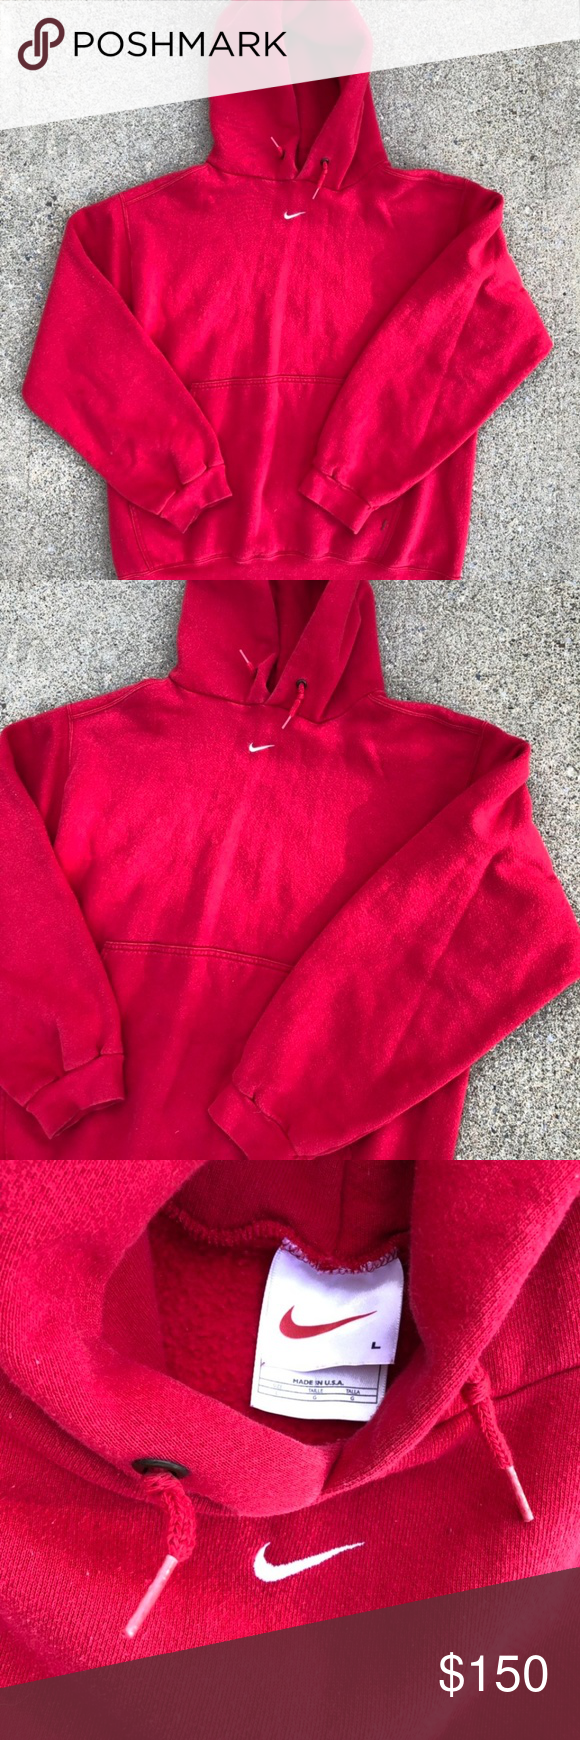 Vintage 90s Nike Hoodie As Seen On Travis Scott Great Condition Fire W Cargos Or Blue Jeans If You Re Looking For Vintage Nike Hoodie Clothes Design Hoodies